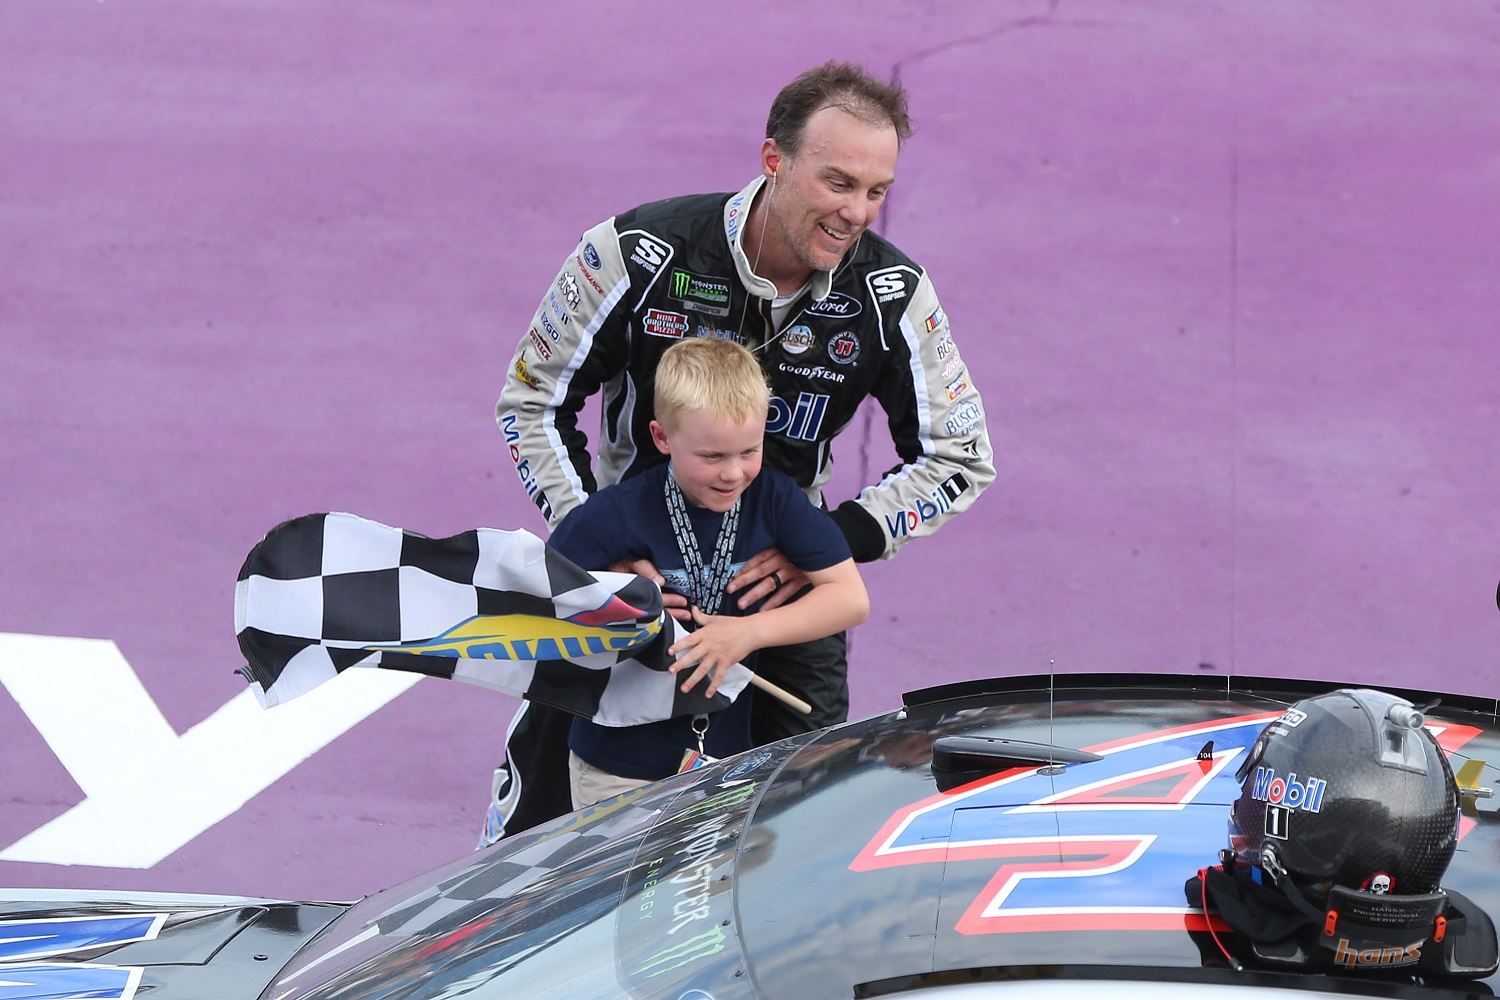 NASCAR Great Kevin Harvick Built an Augusta Replica in His Yard With His Son in Mind